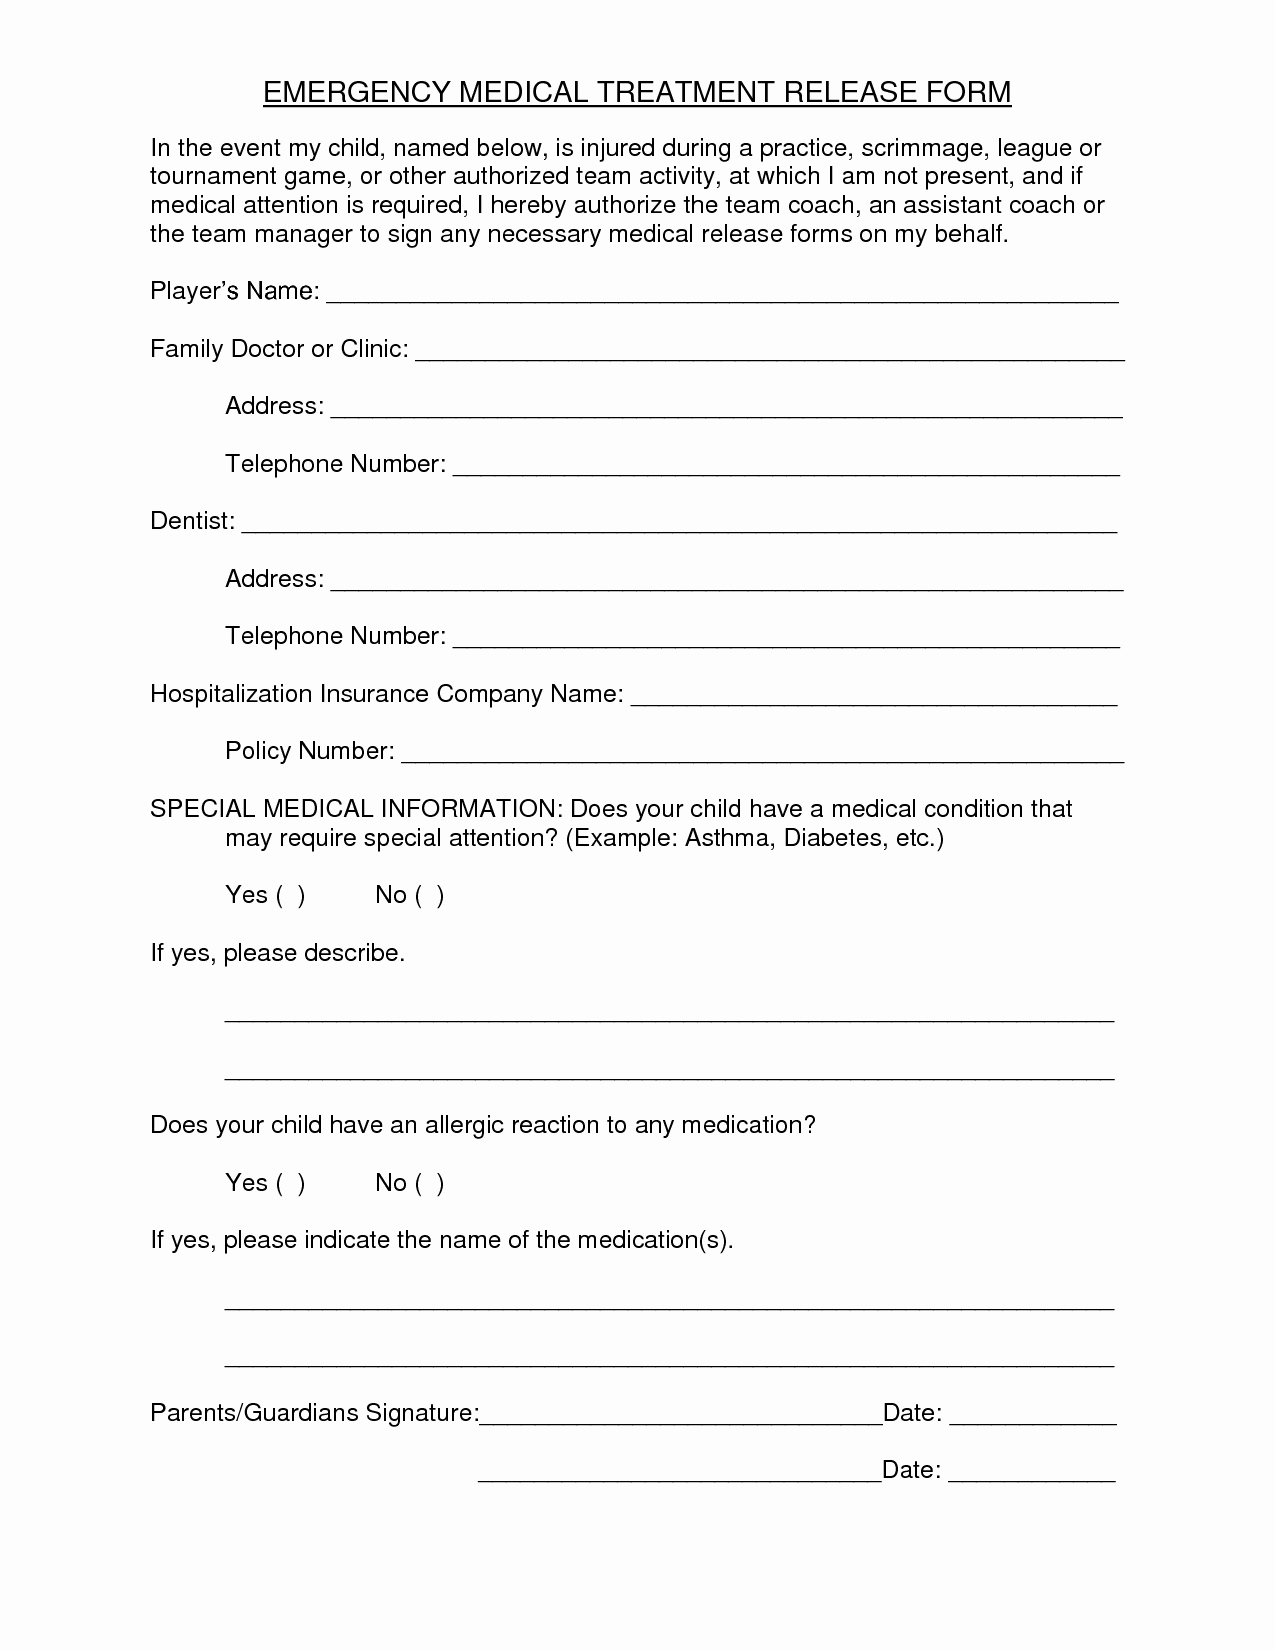 Emergency Room Release Papers Beautiful Medical Treatment Release form Free Printable Documents